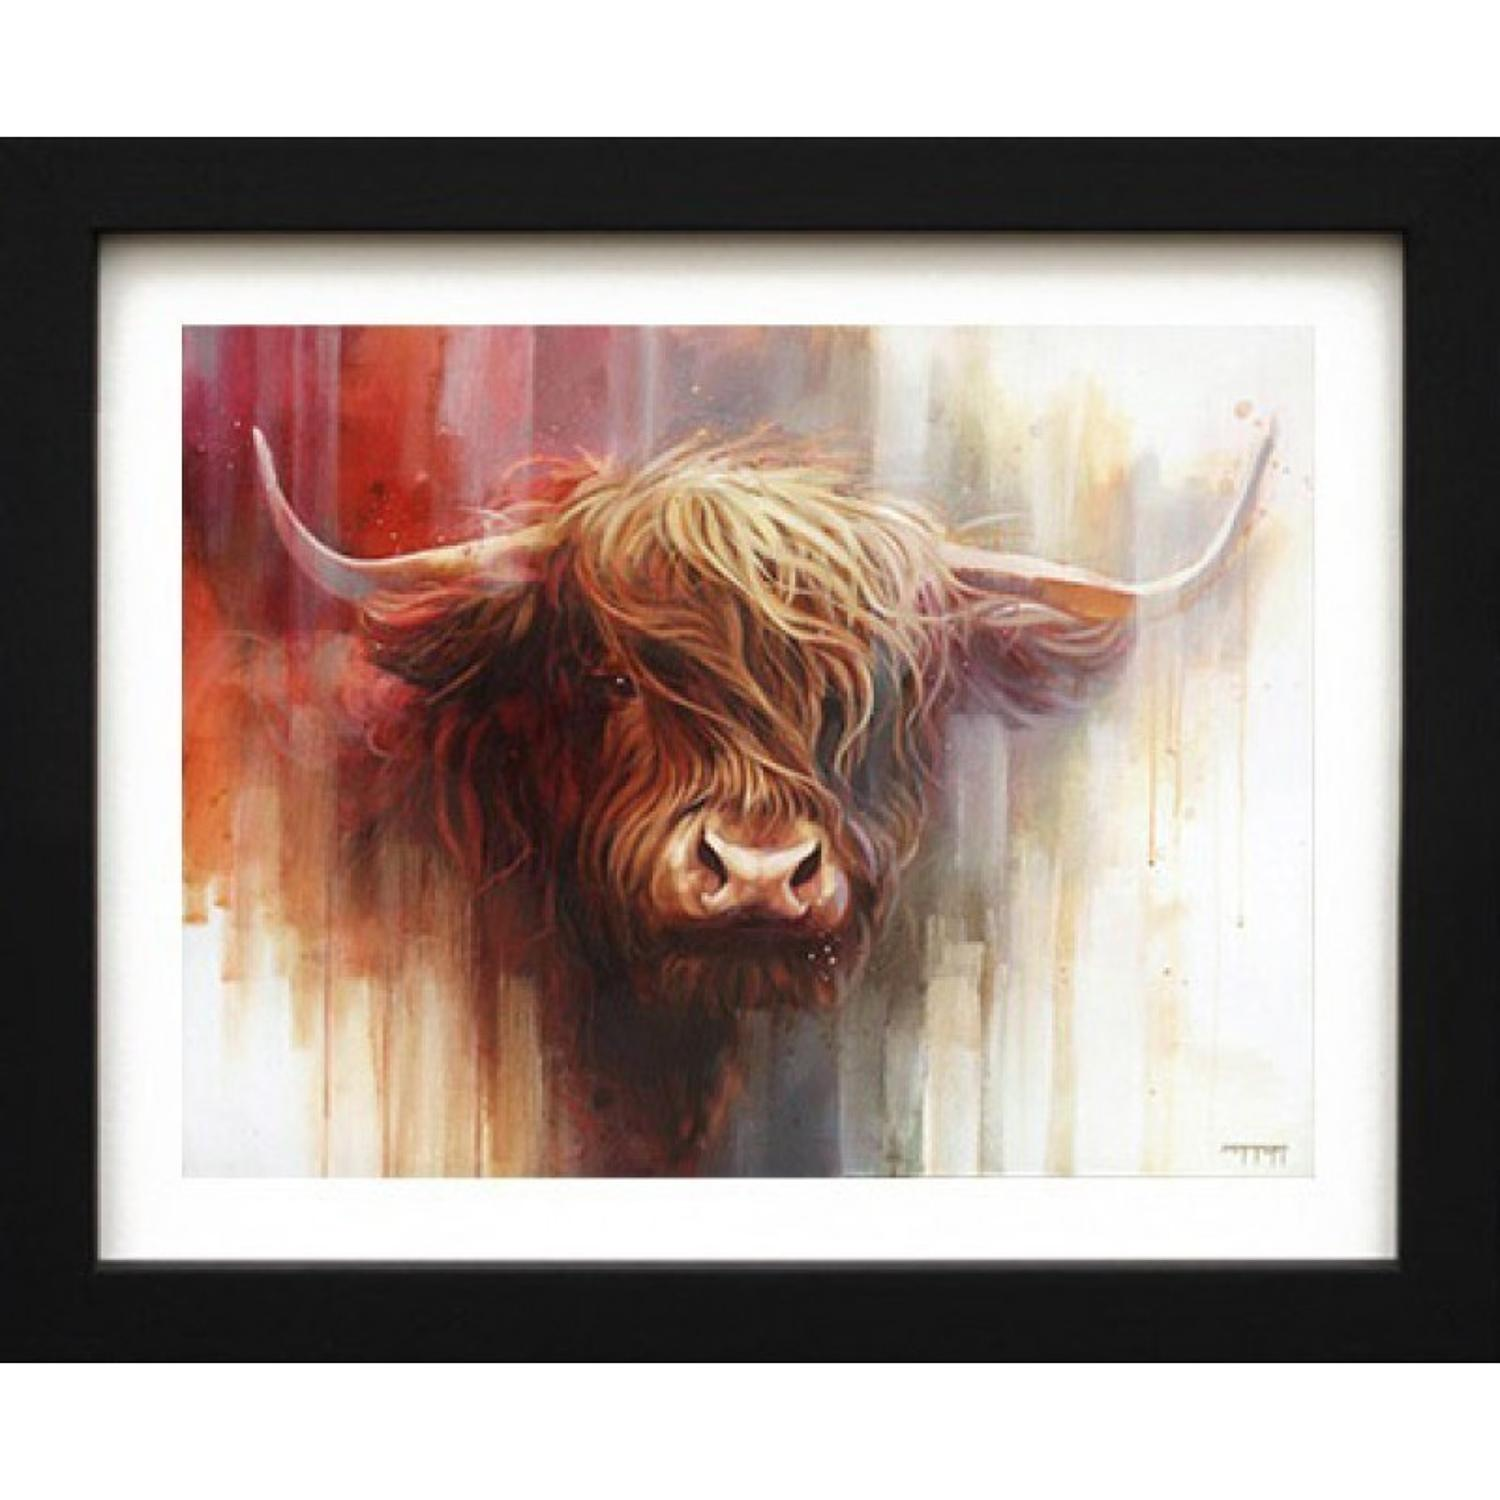 Red Bull Framed Canvas Art Print by Ben Jeffrey